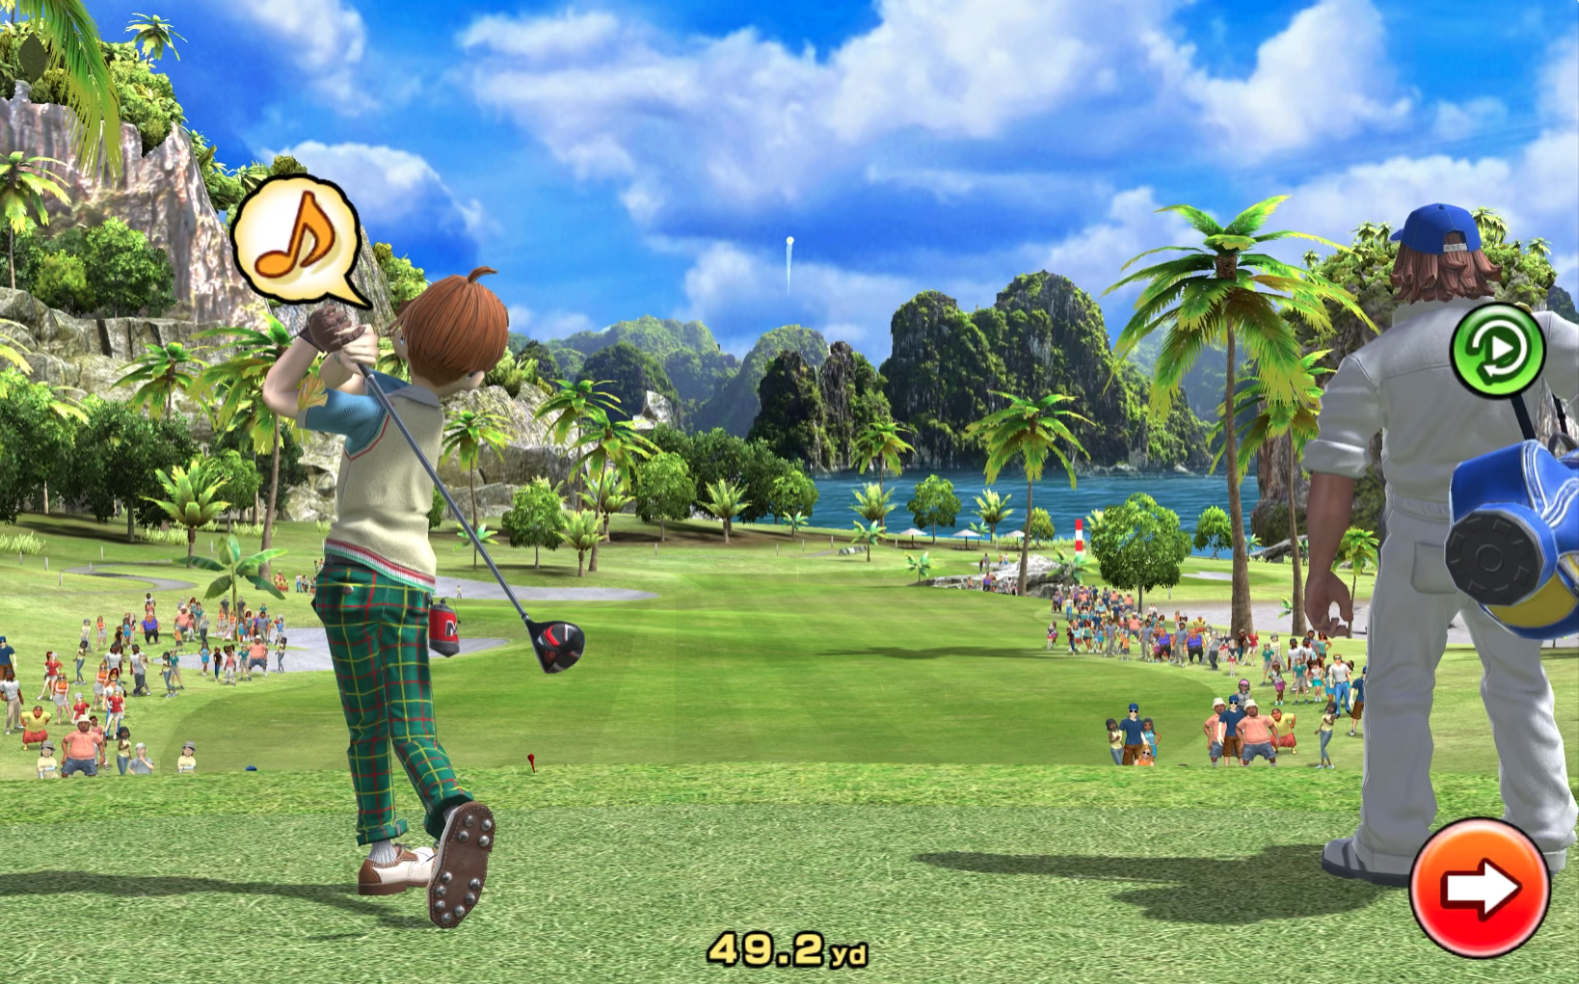 A lanky boy in plaid pants whistles an eighth-note on the follow through to his tee shot in Clap Hanz Golf